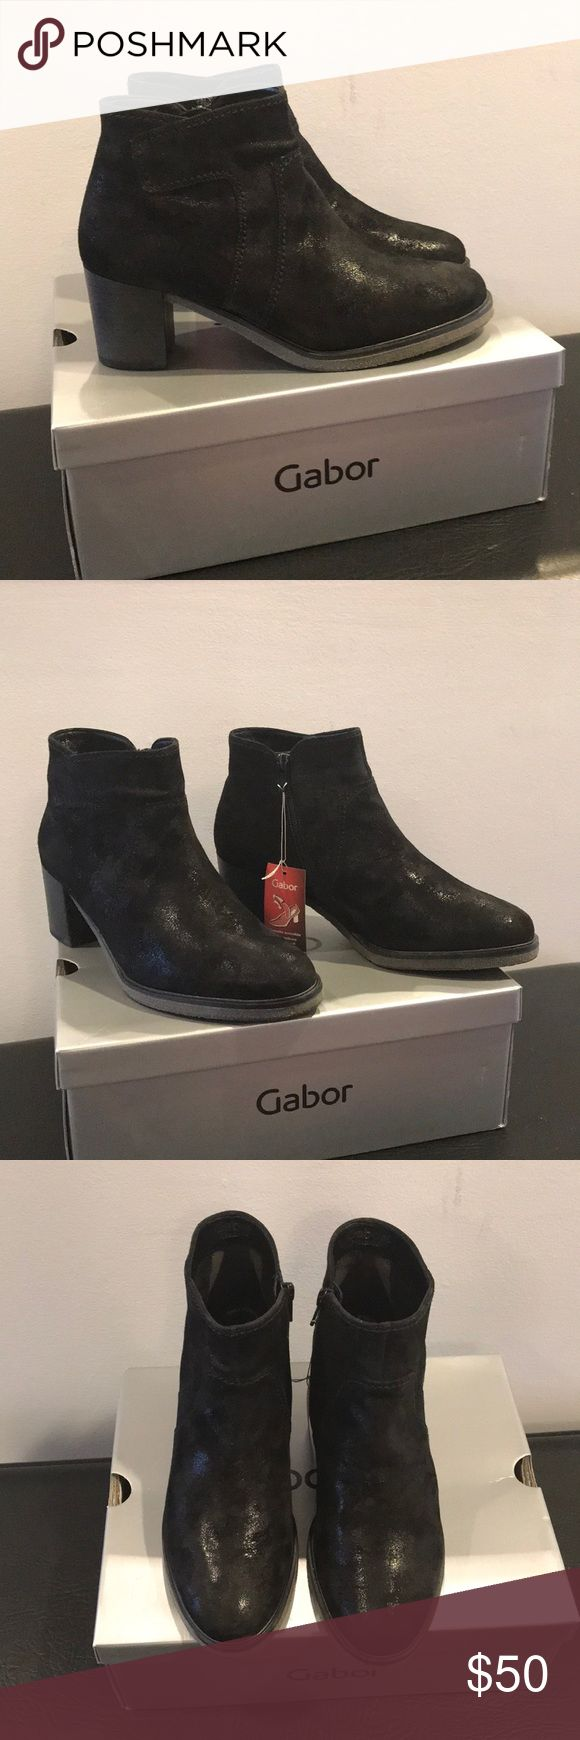 """Nib Gabor black booties size 8-1/2 Nib Gabor black booties size 8-1/2 with removable insoles heel measures 2-1/2"""" with a non slip sole Gabor Shoes Ankle Boots & Booties"""